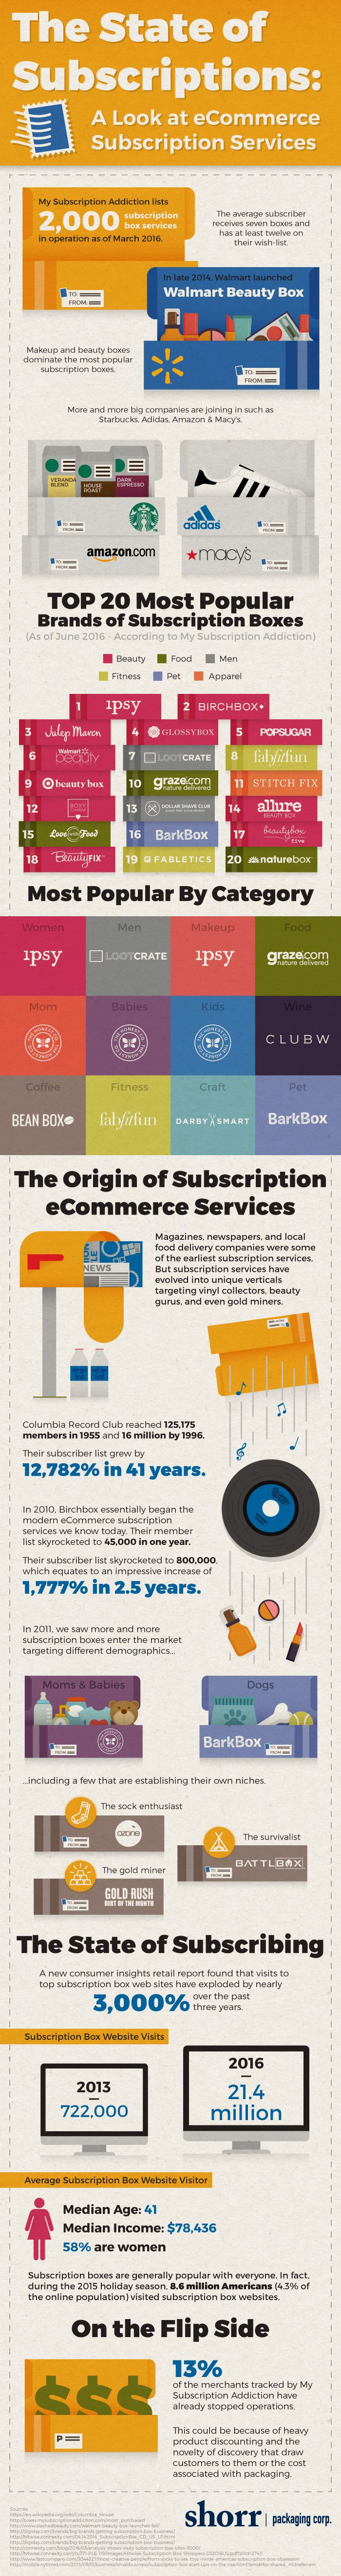 The Rise of Subscription Based Ecommerce Services